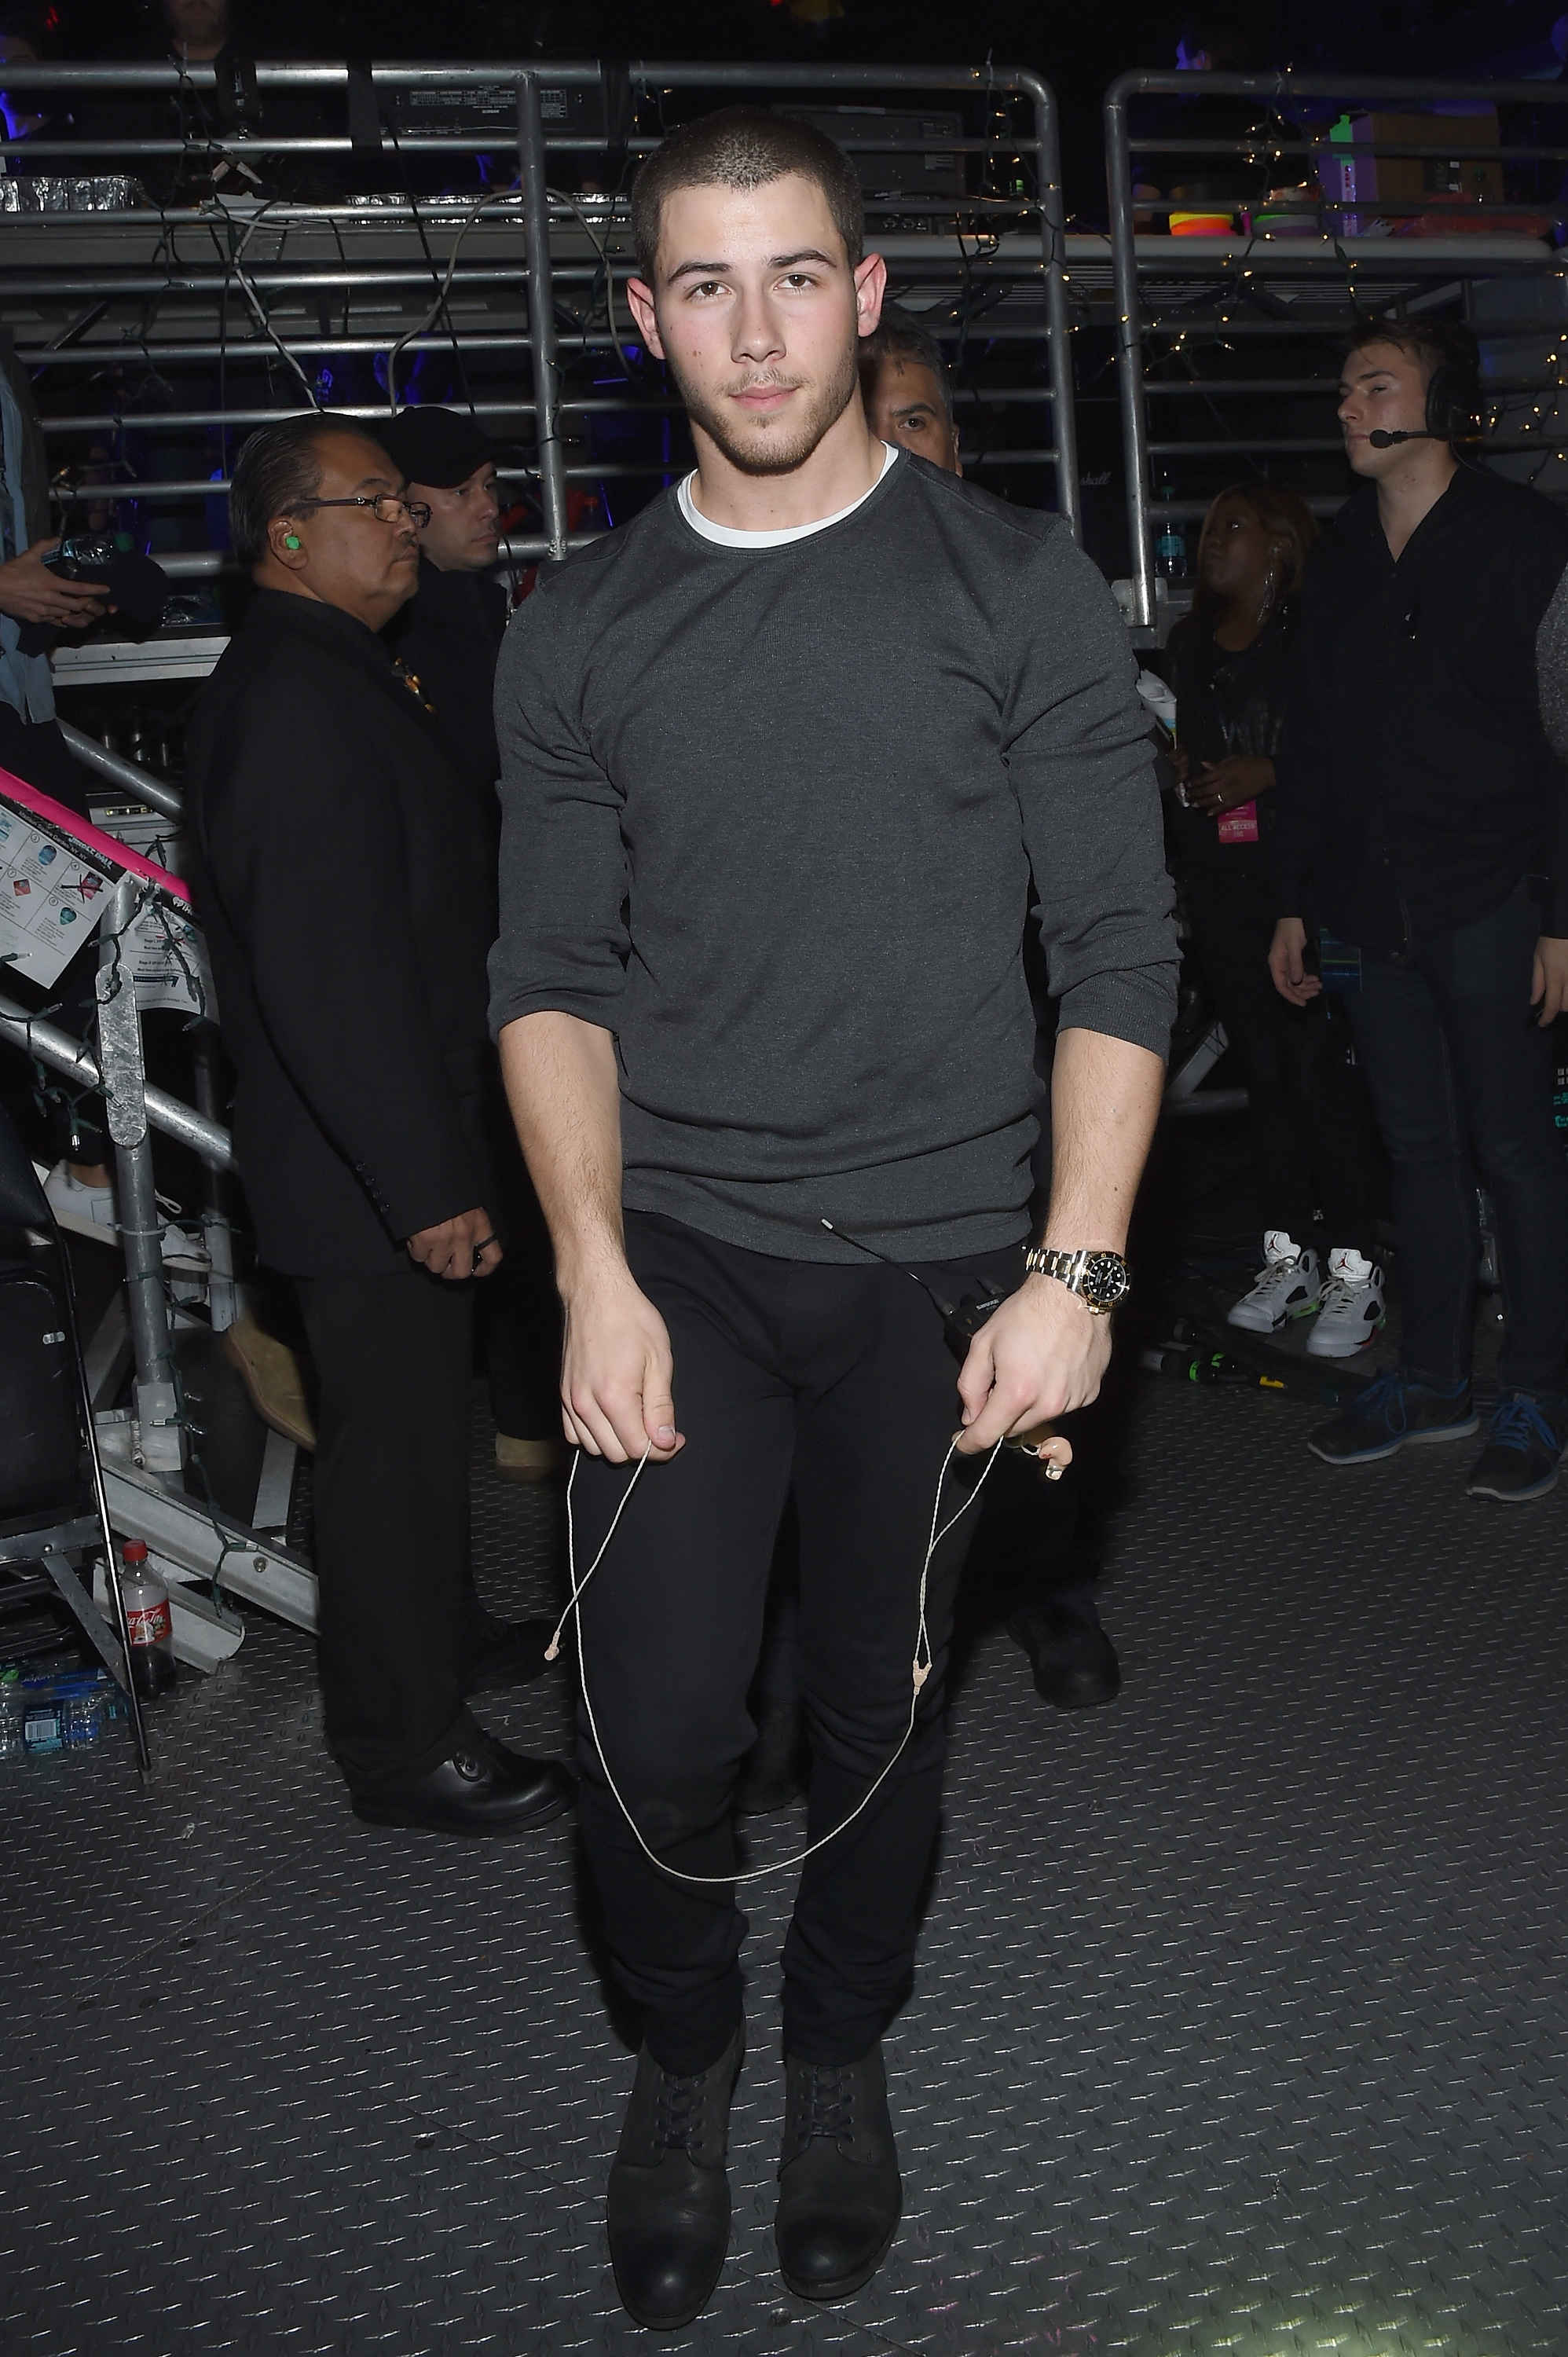 Nick Jonas backstage at Madison Square Garden